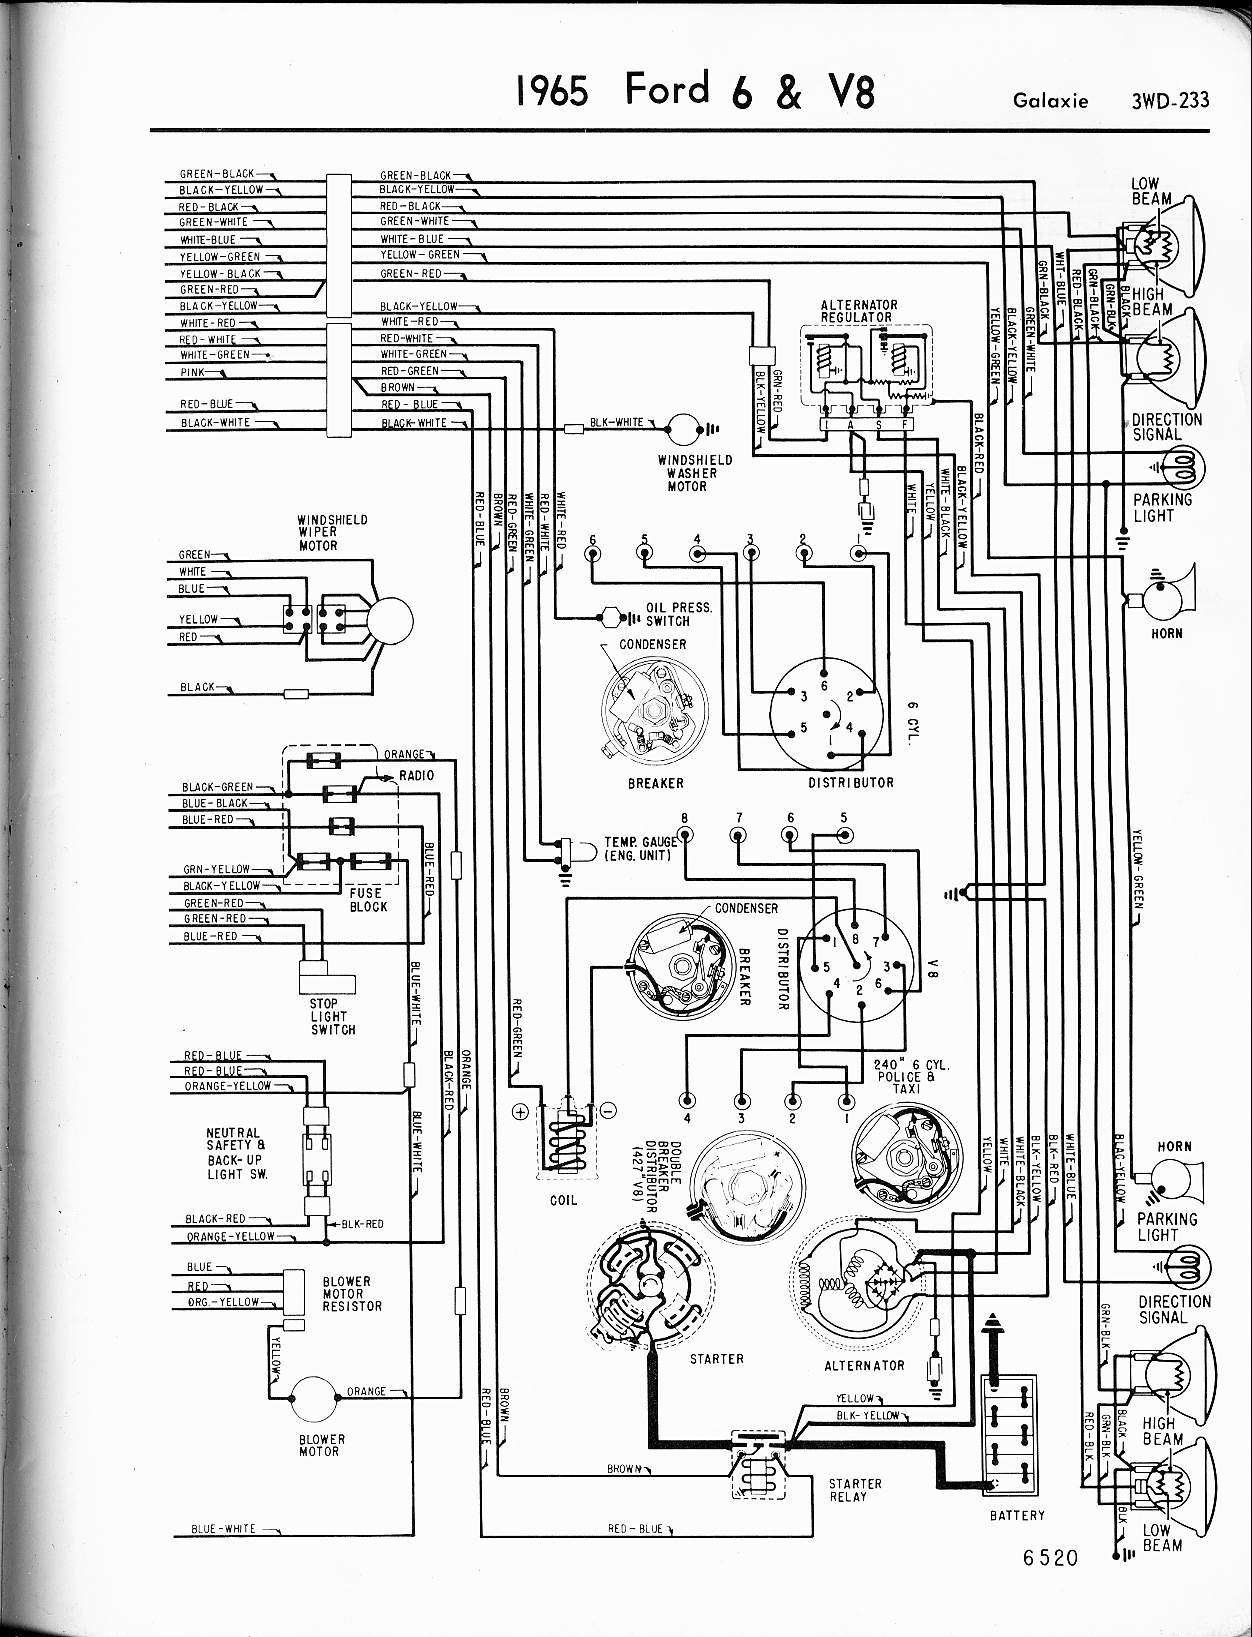 MWire5765 233 57 65 ford wiring diagrams 2005 mustang gt ignition wiring diagram at virtualis.co